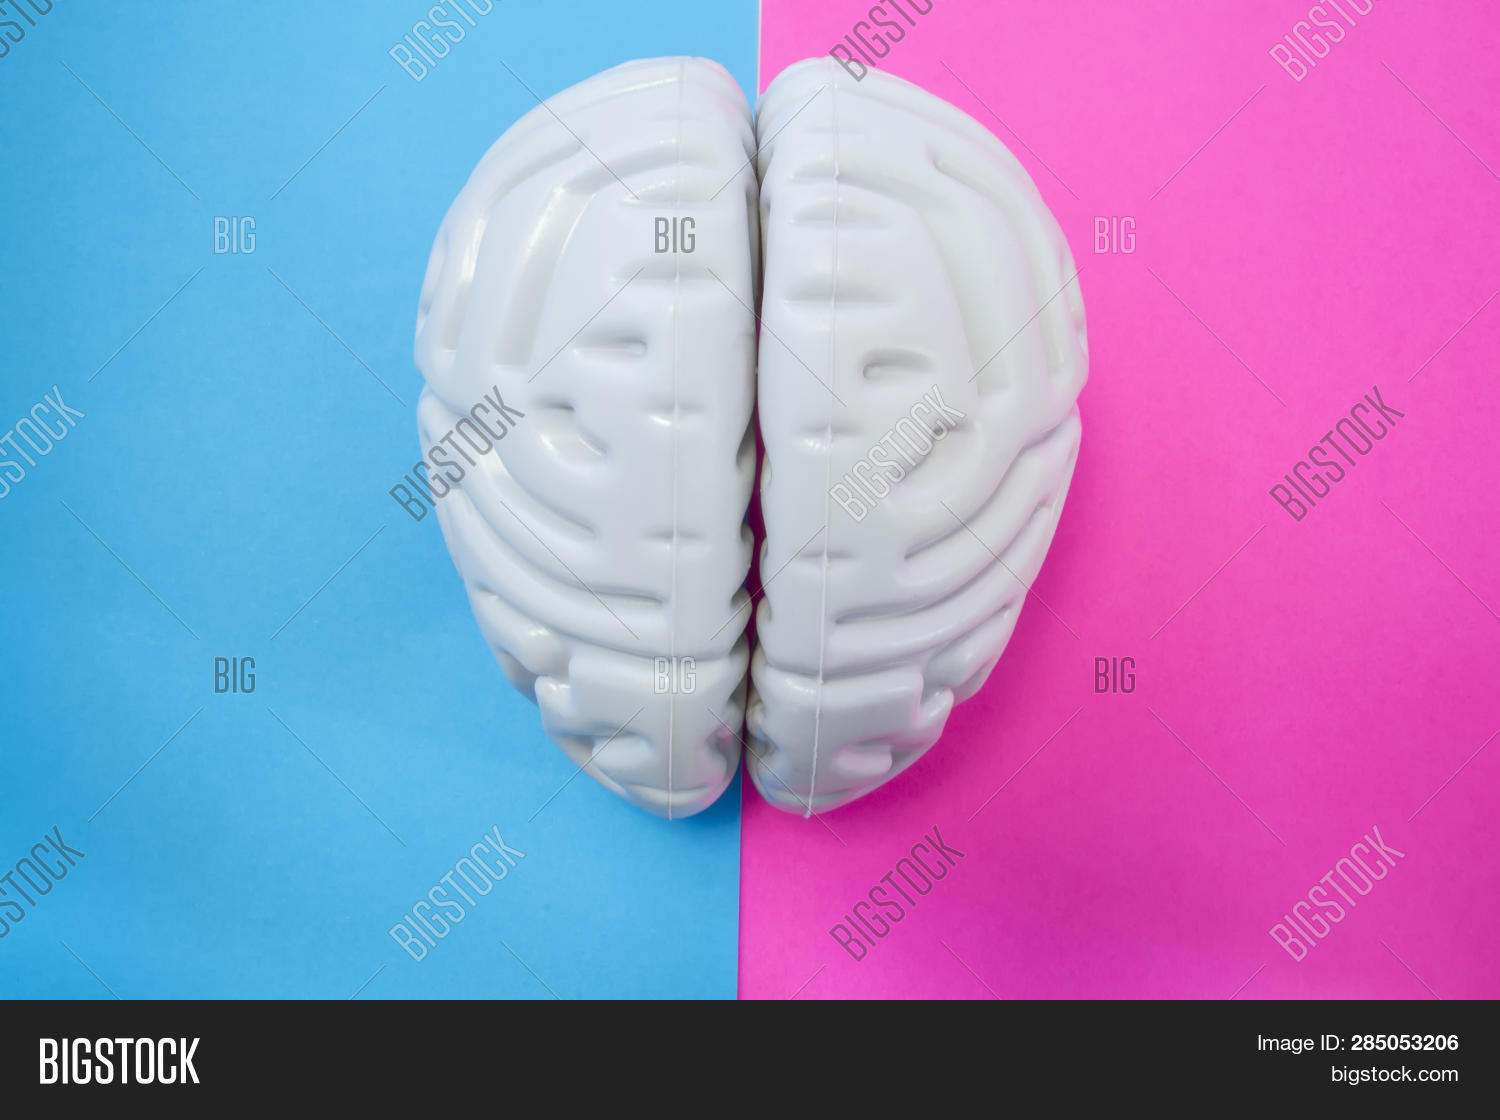 The Figure Of Human Brain Separates Half Blue Pink Background. The Concept Of Male And Female Brain.